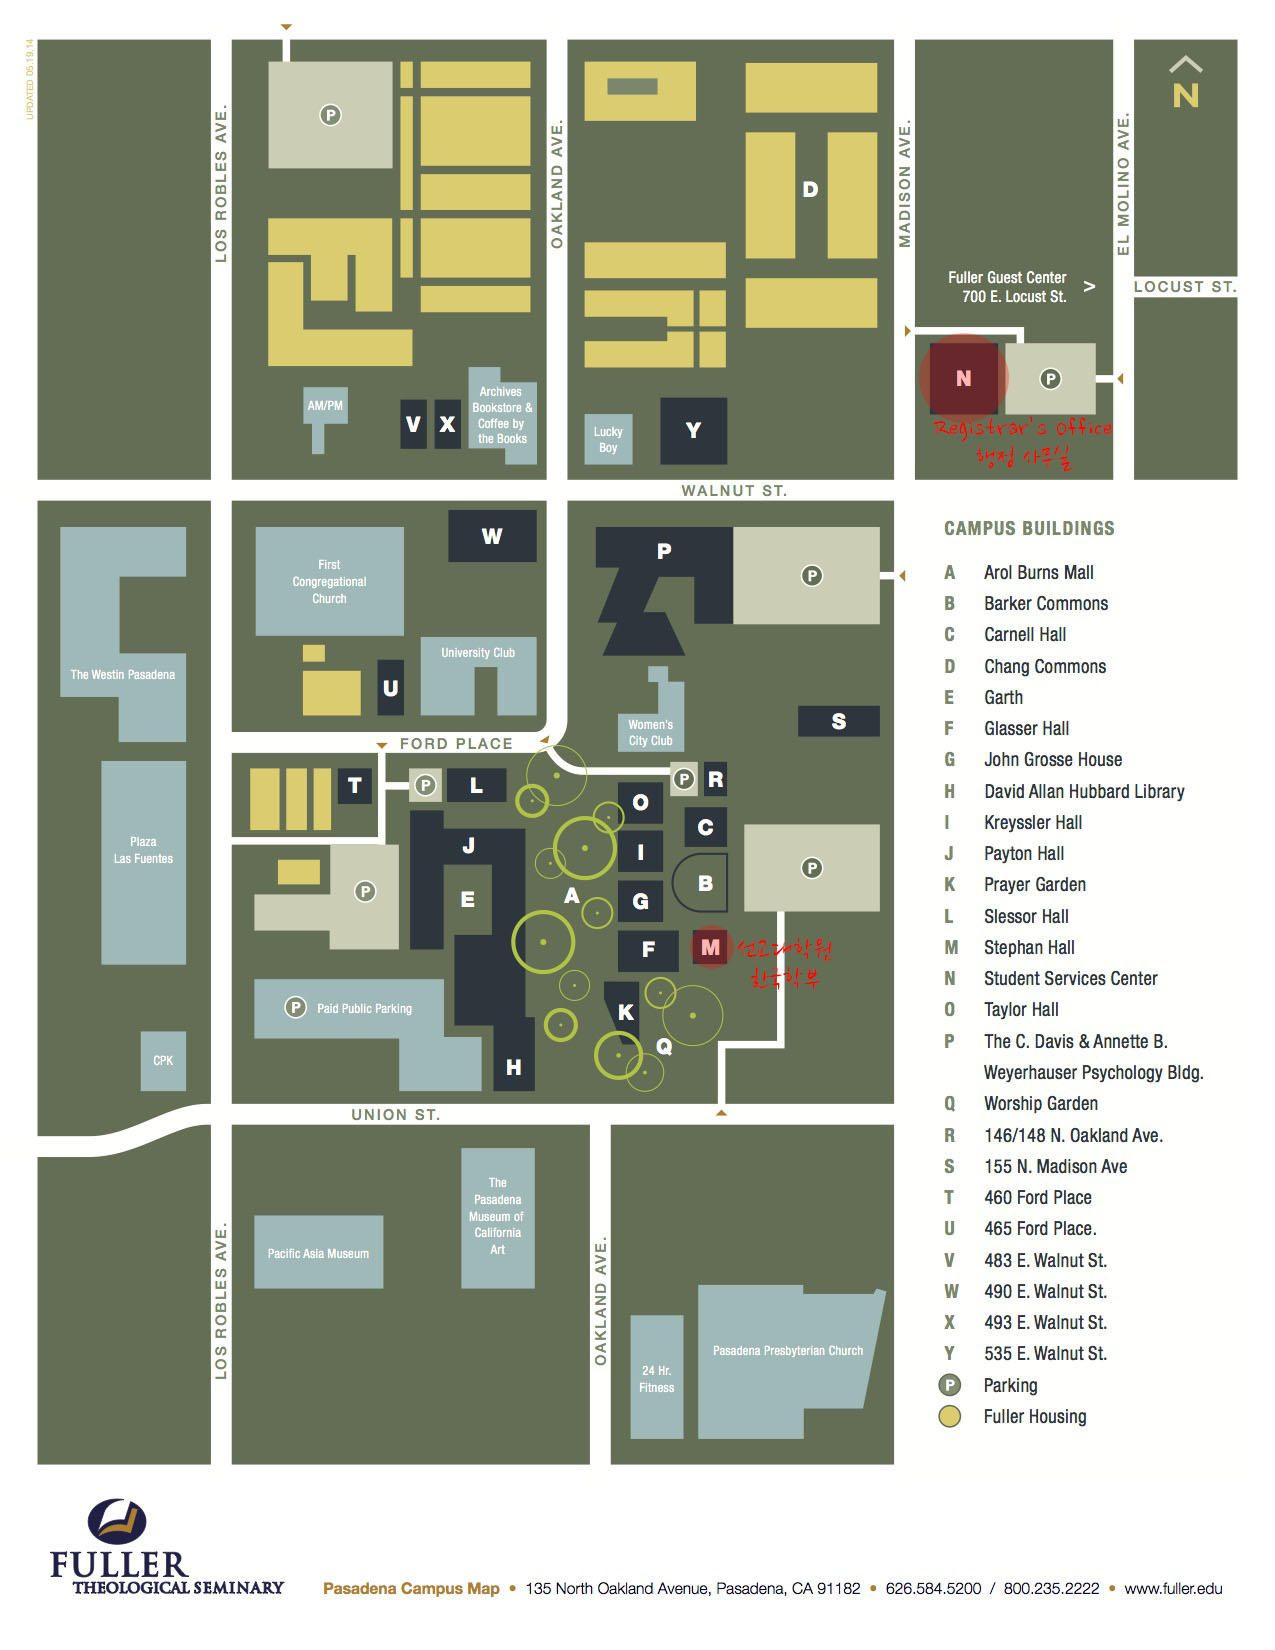 FTS Campus Map(1).jpg